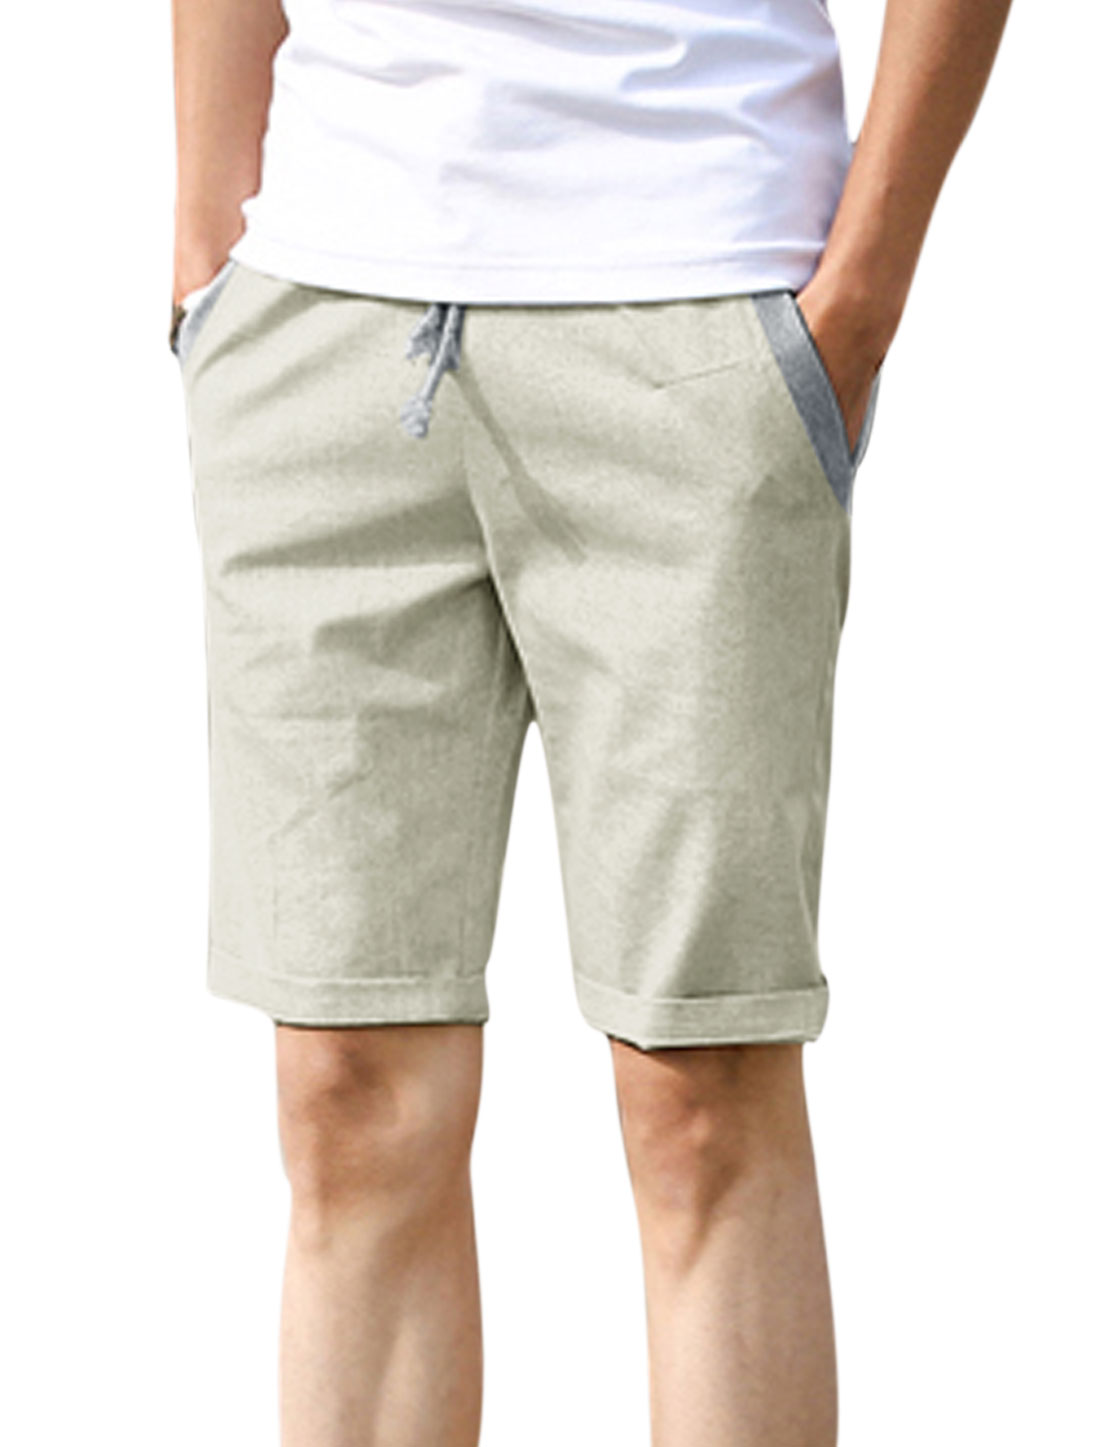 Men Mid Rise Elastic Waist Drawstring Pockets Leisure Shorts Light Gray W30